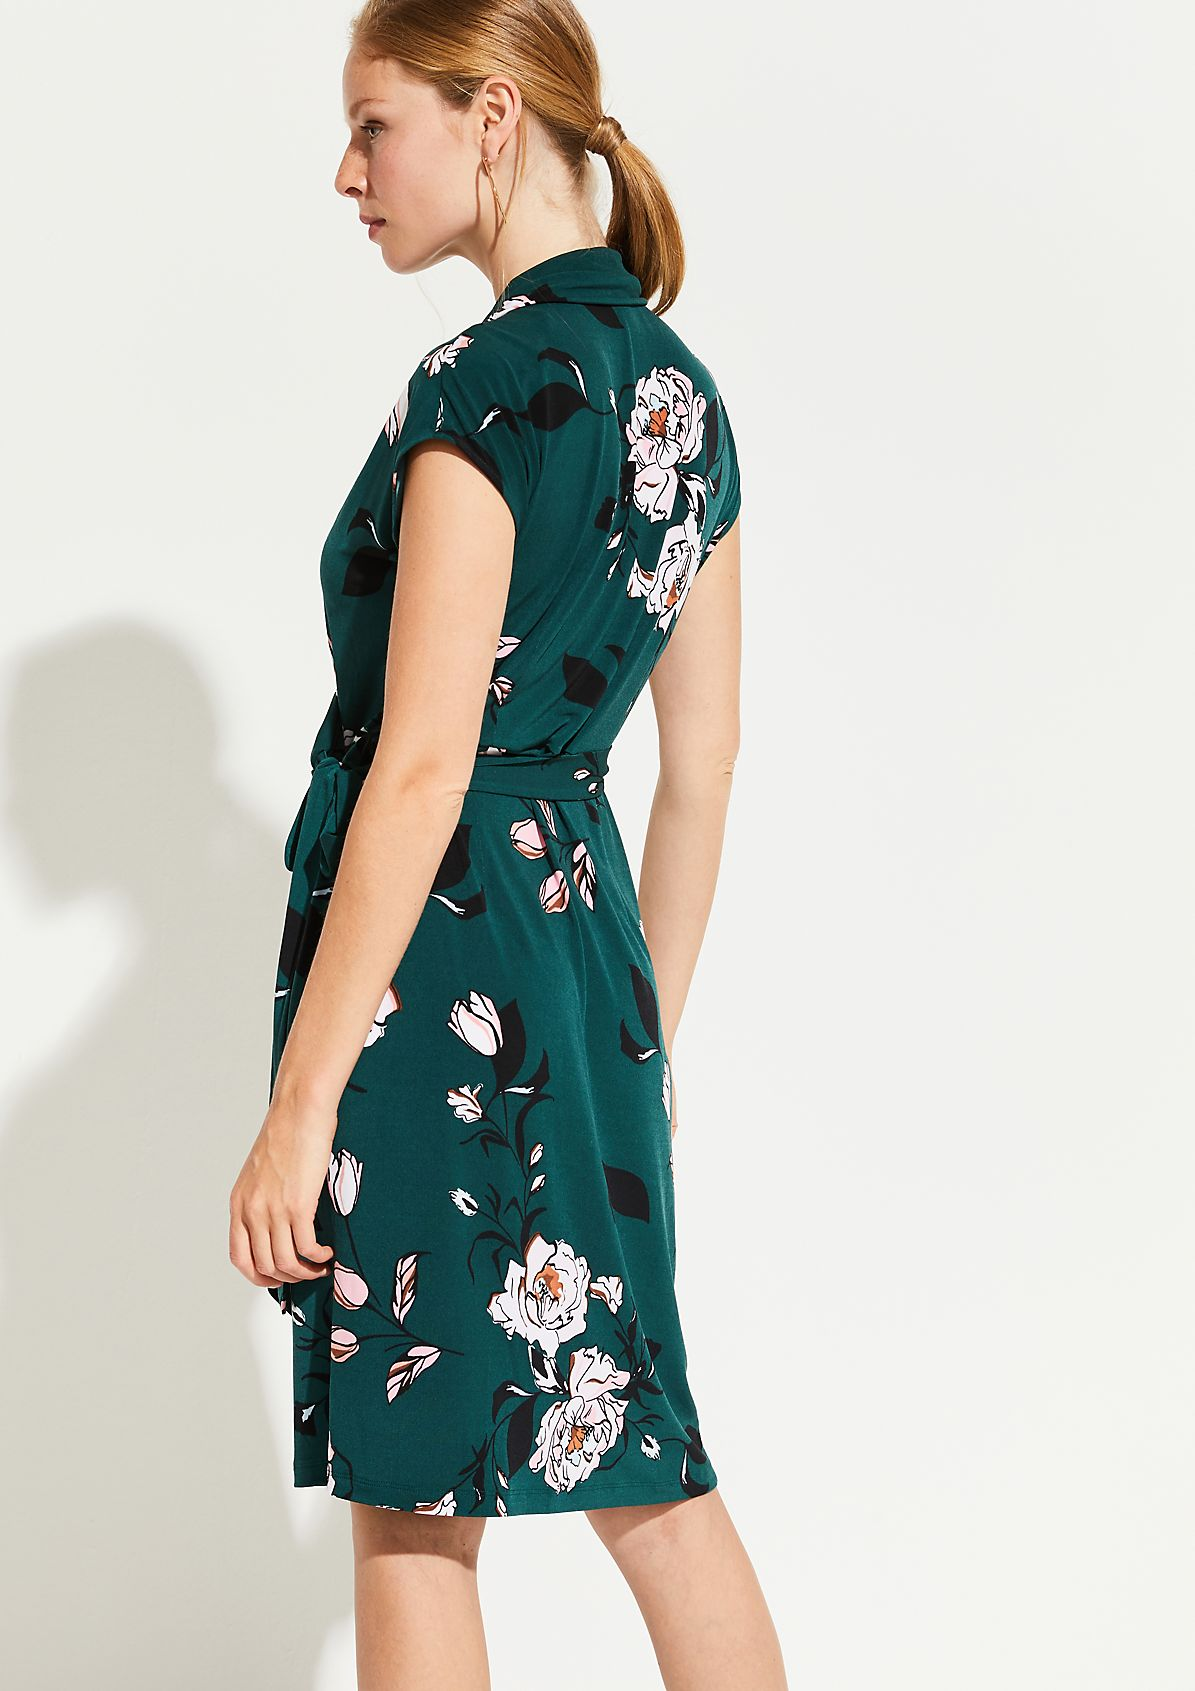 Jersey dress with a decorative floral pattern from comma